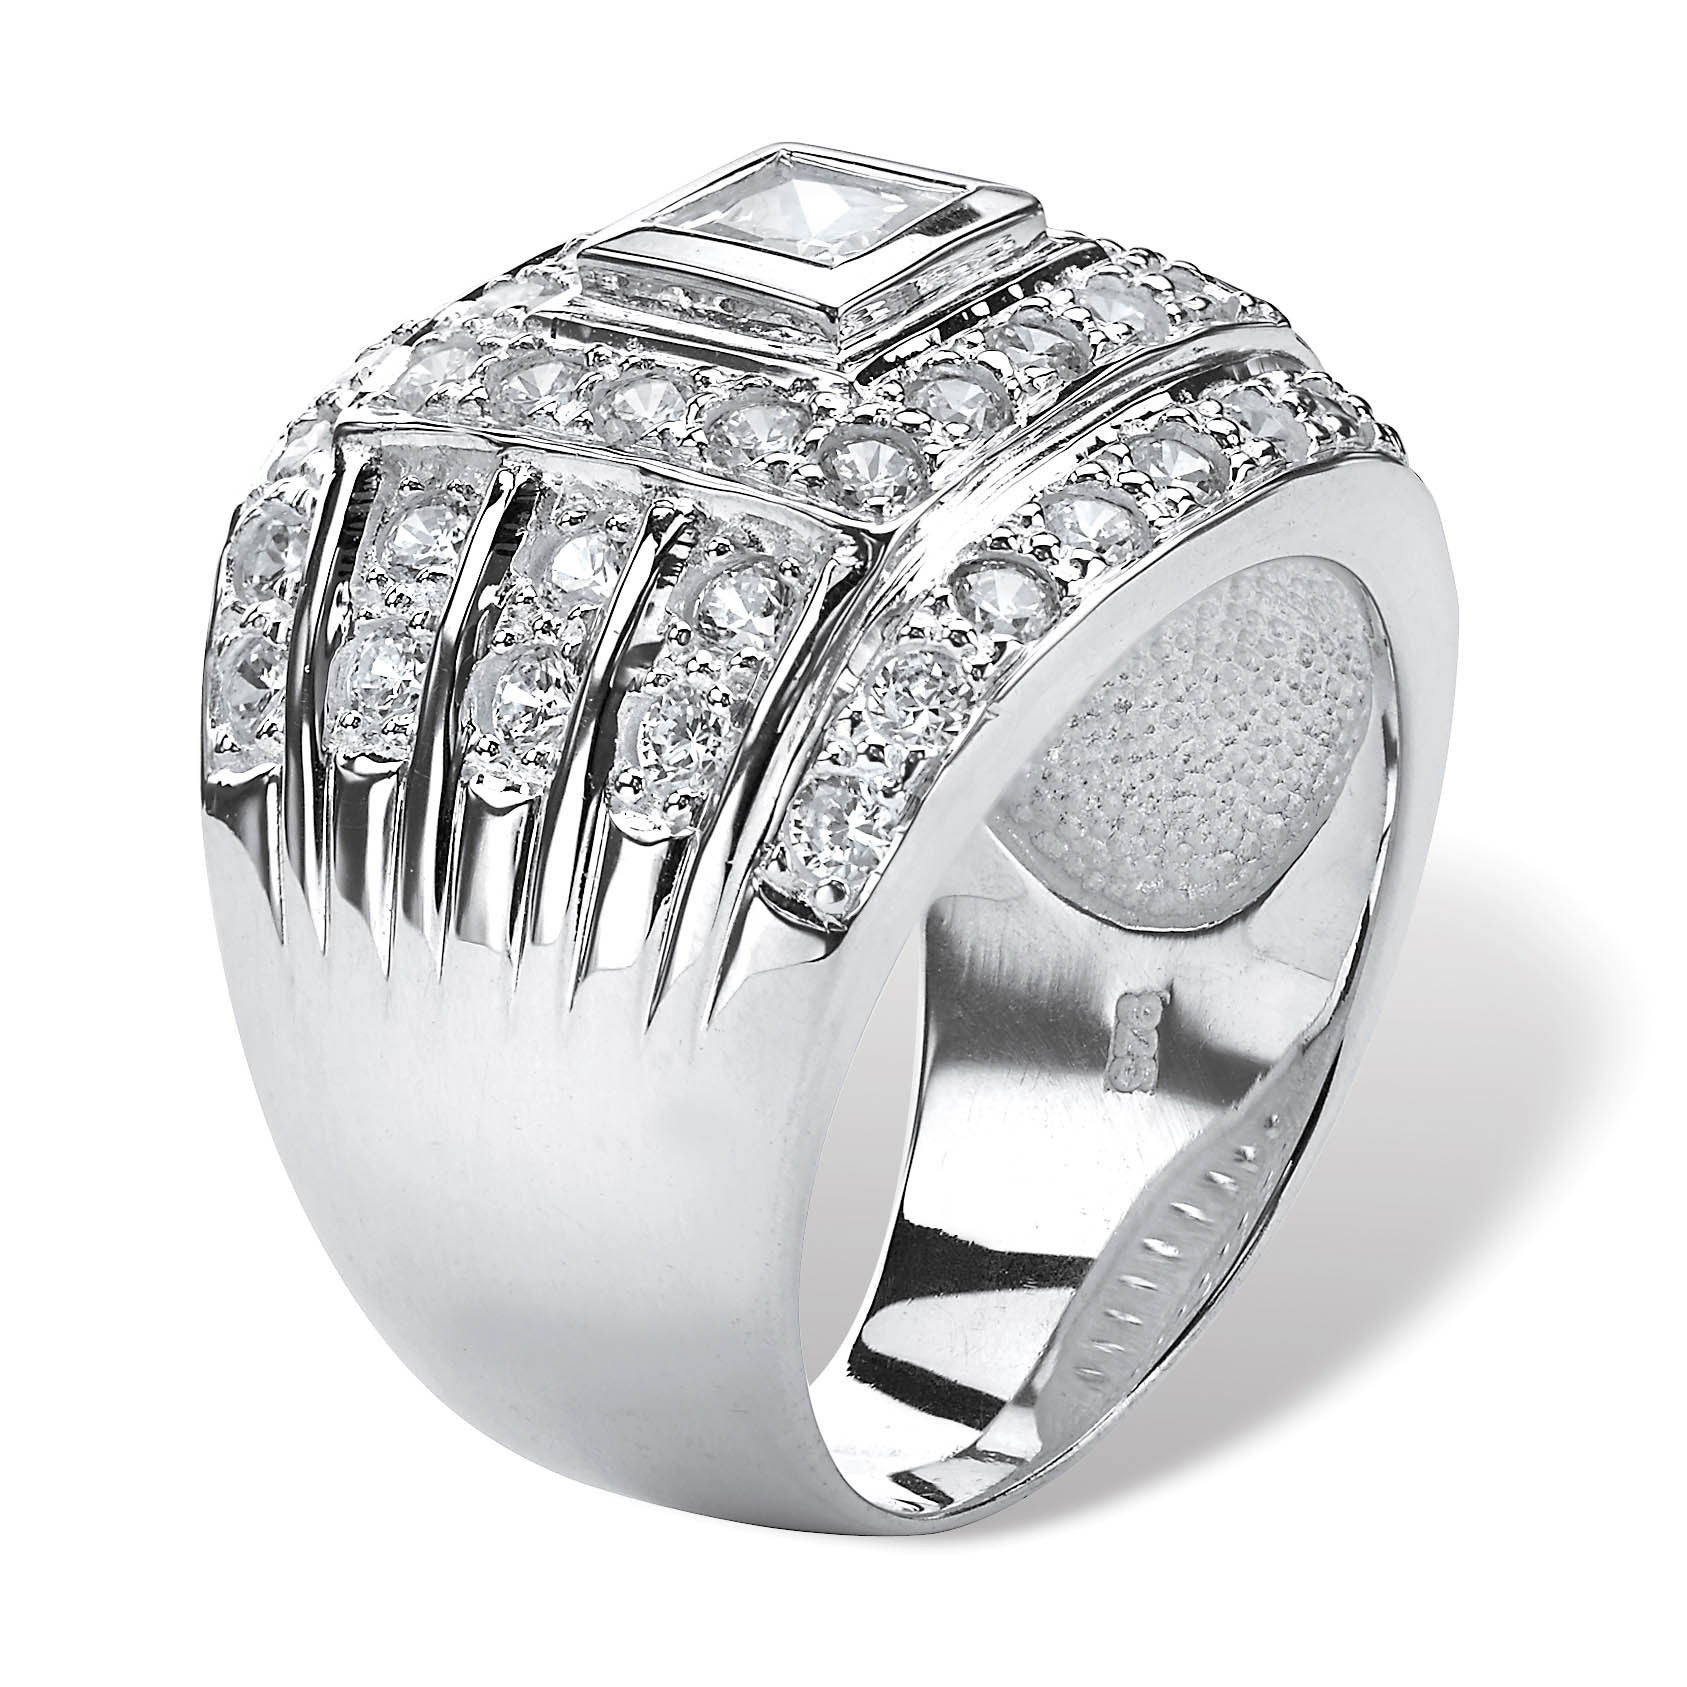 Men's 2 89 TCW Square-Cut Cubic Zirconia Ring in  925 Sterling Silver